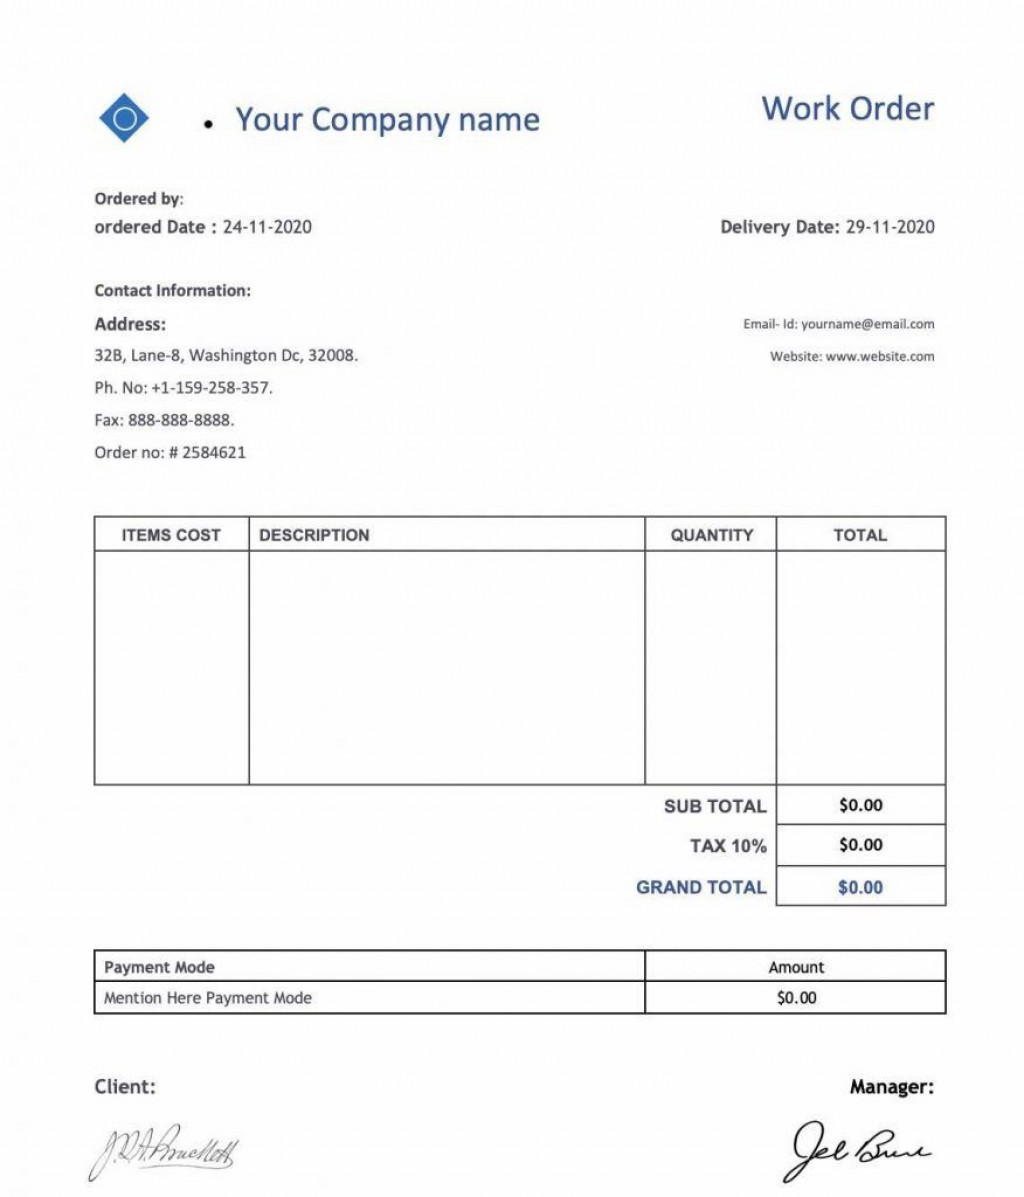 004 Incredible Excel Spreadsheet Work Order Template Example Large